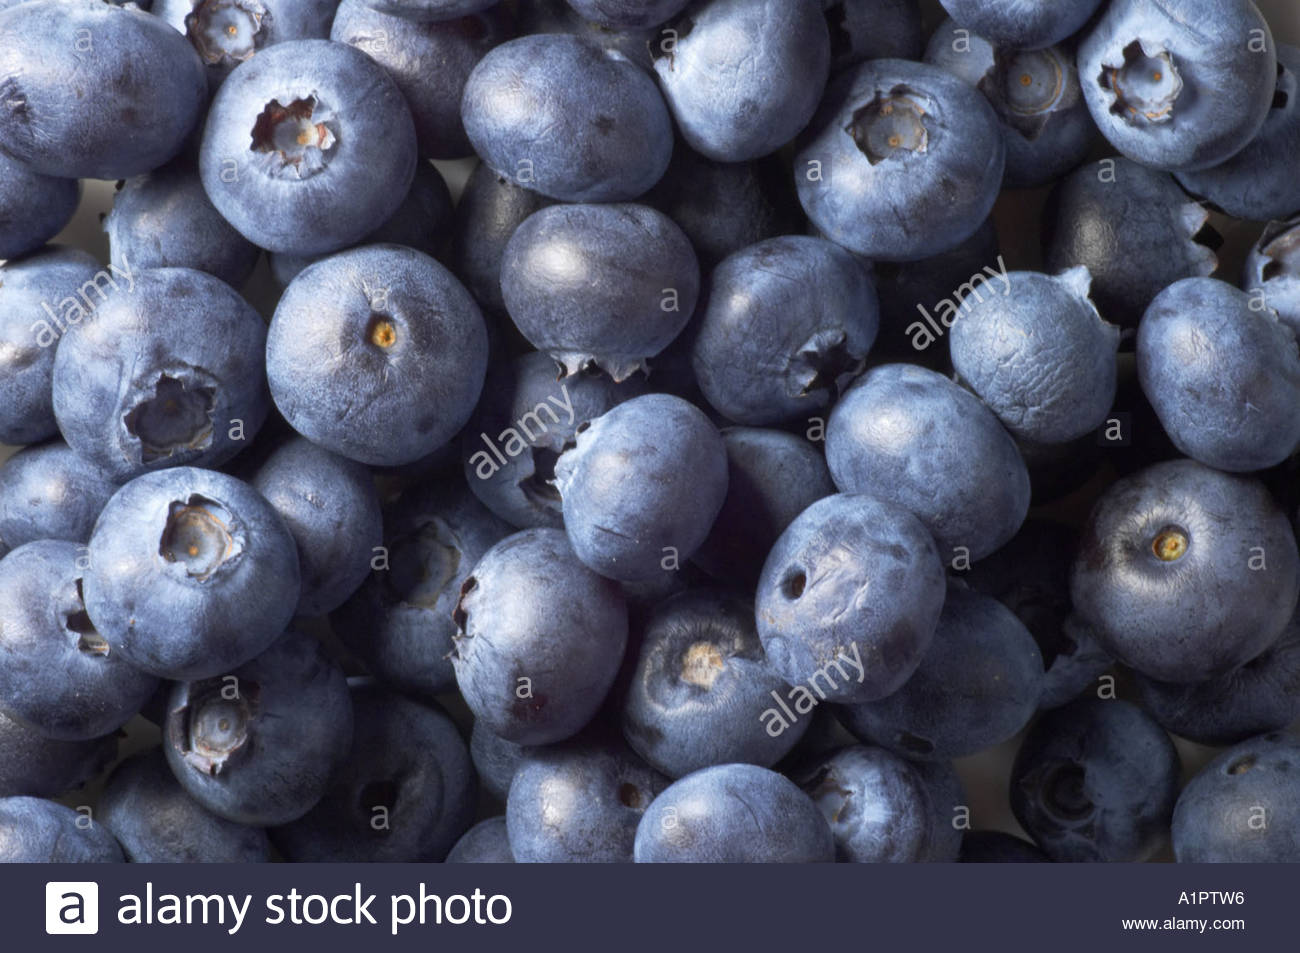 A number of blueberries - Stock Image